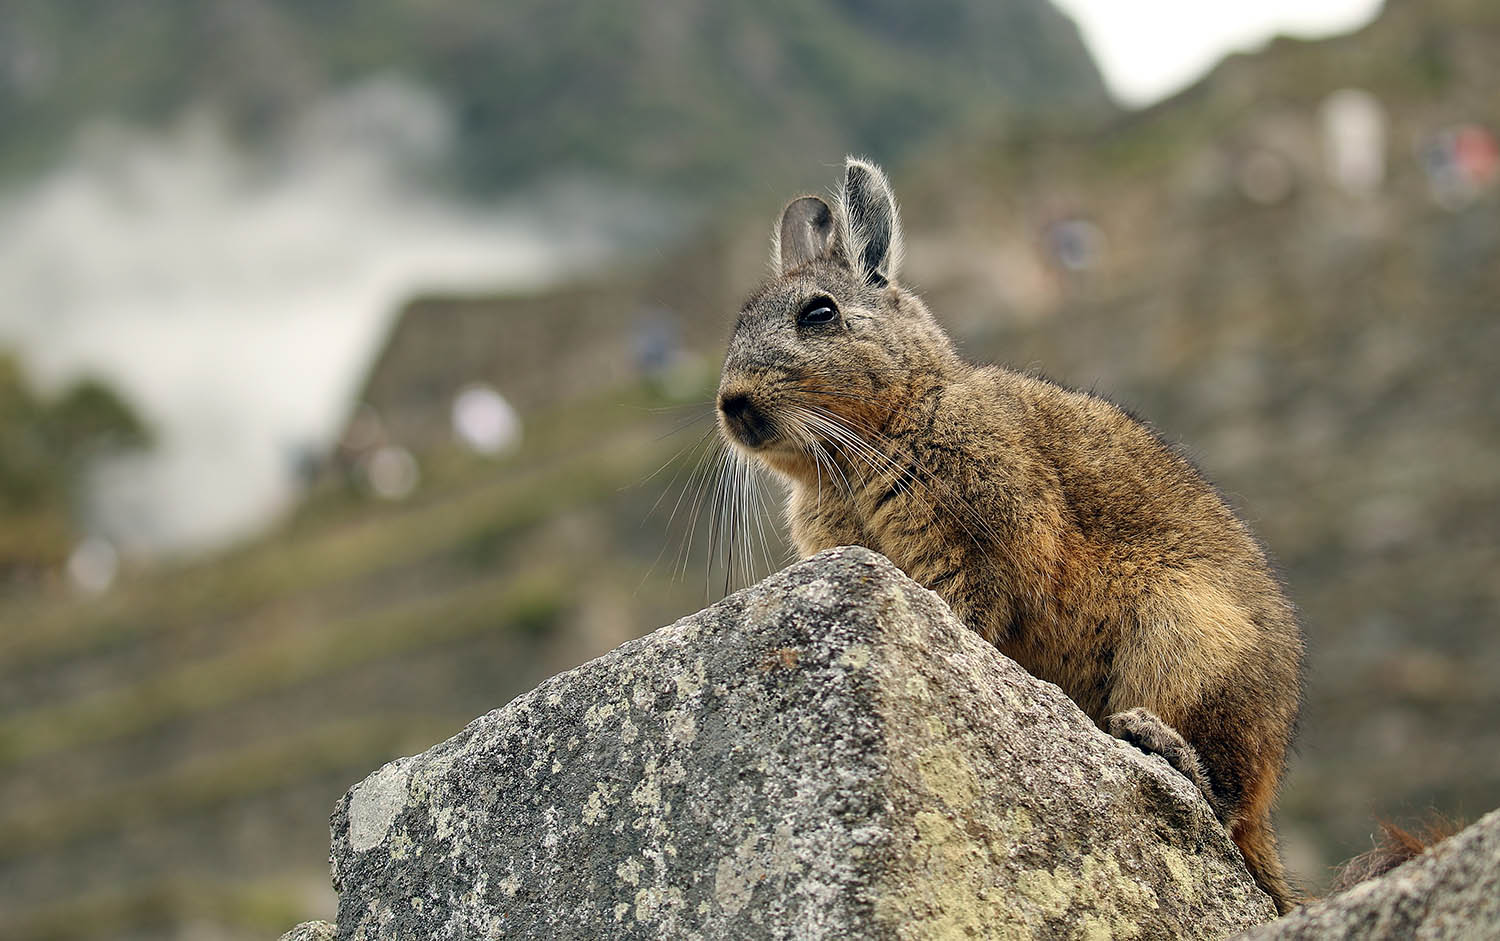 Vizcacha at Machu Picchu ruins (image by Damon Ramsey)